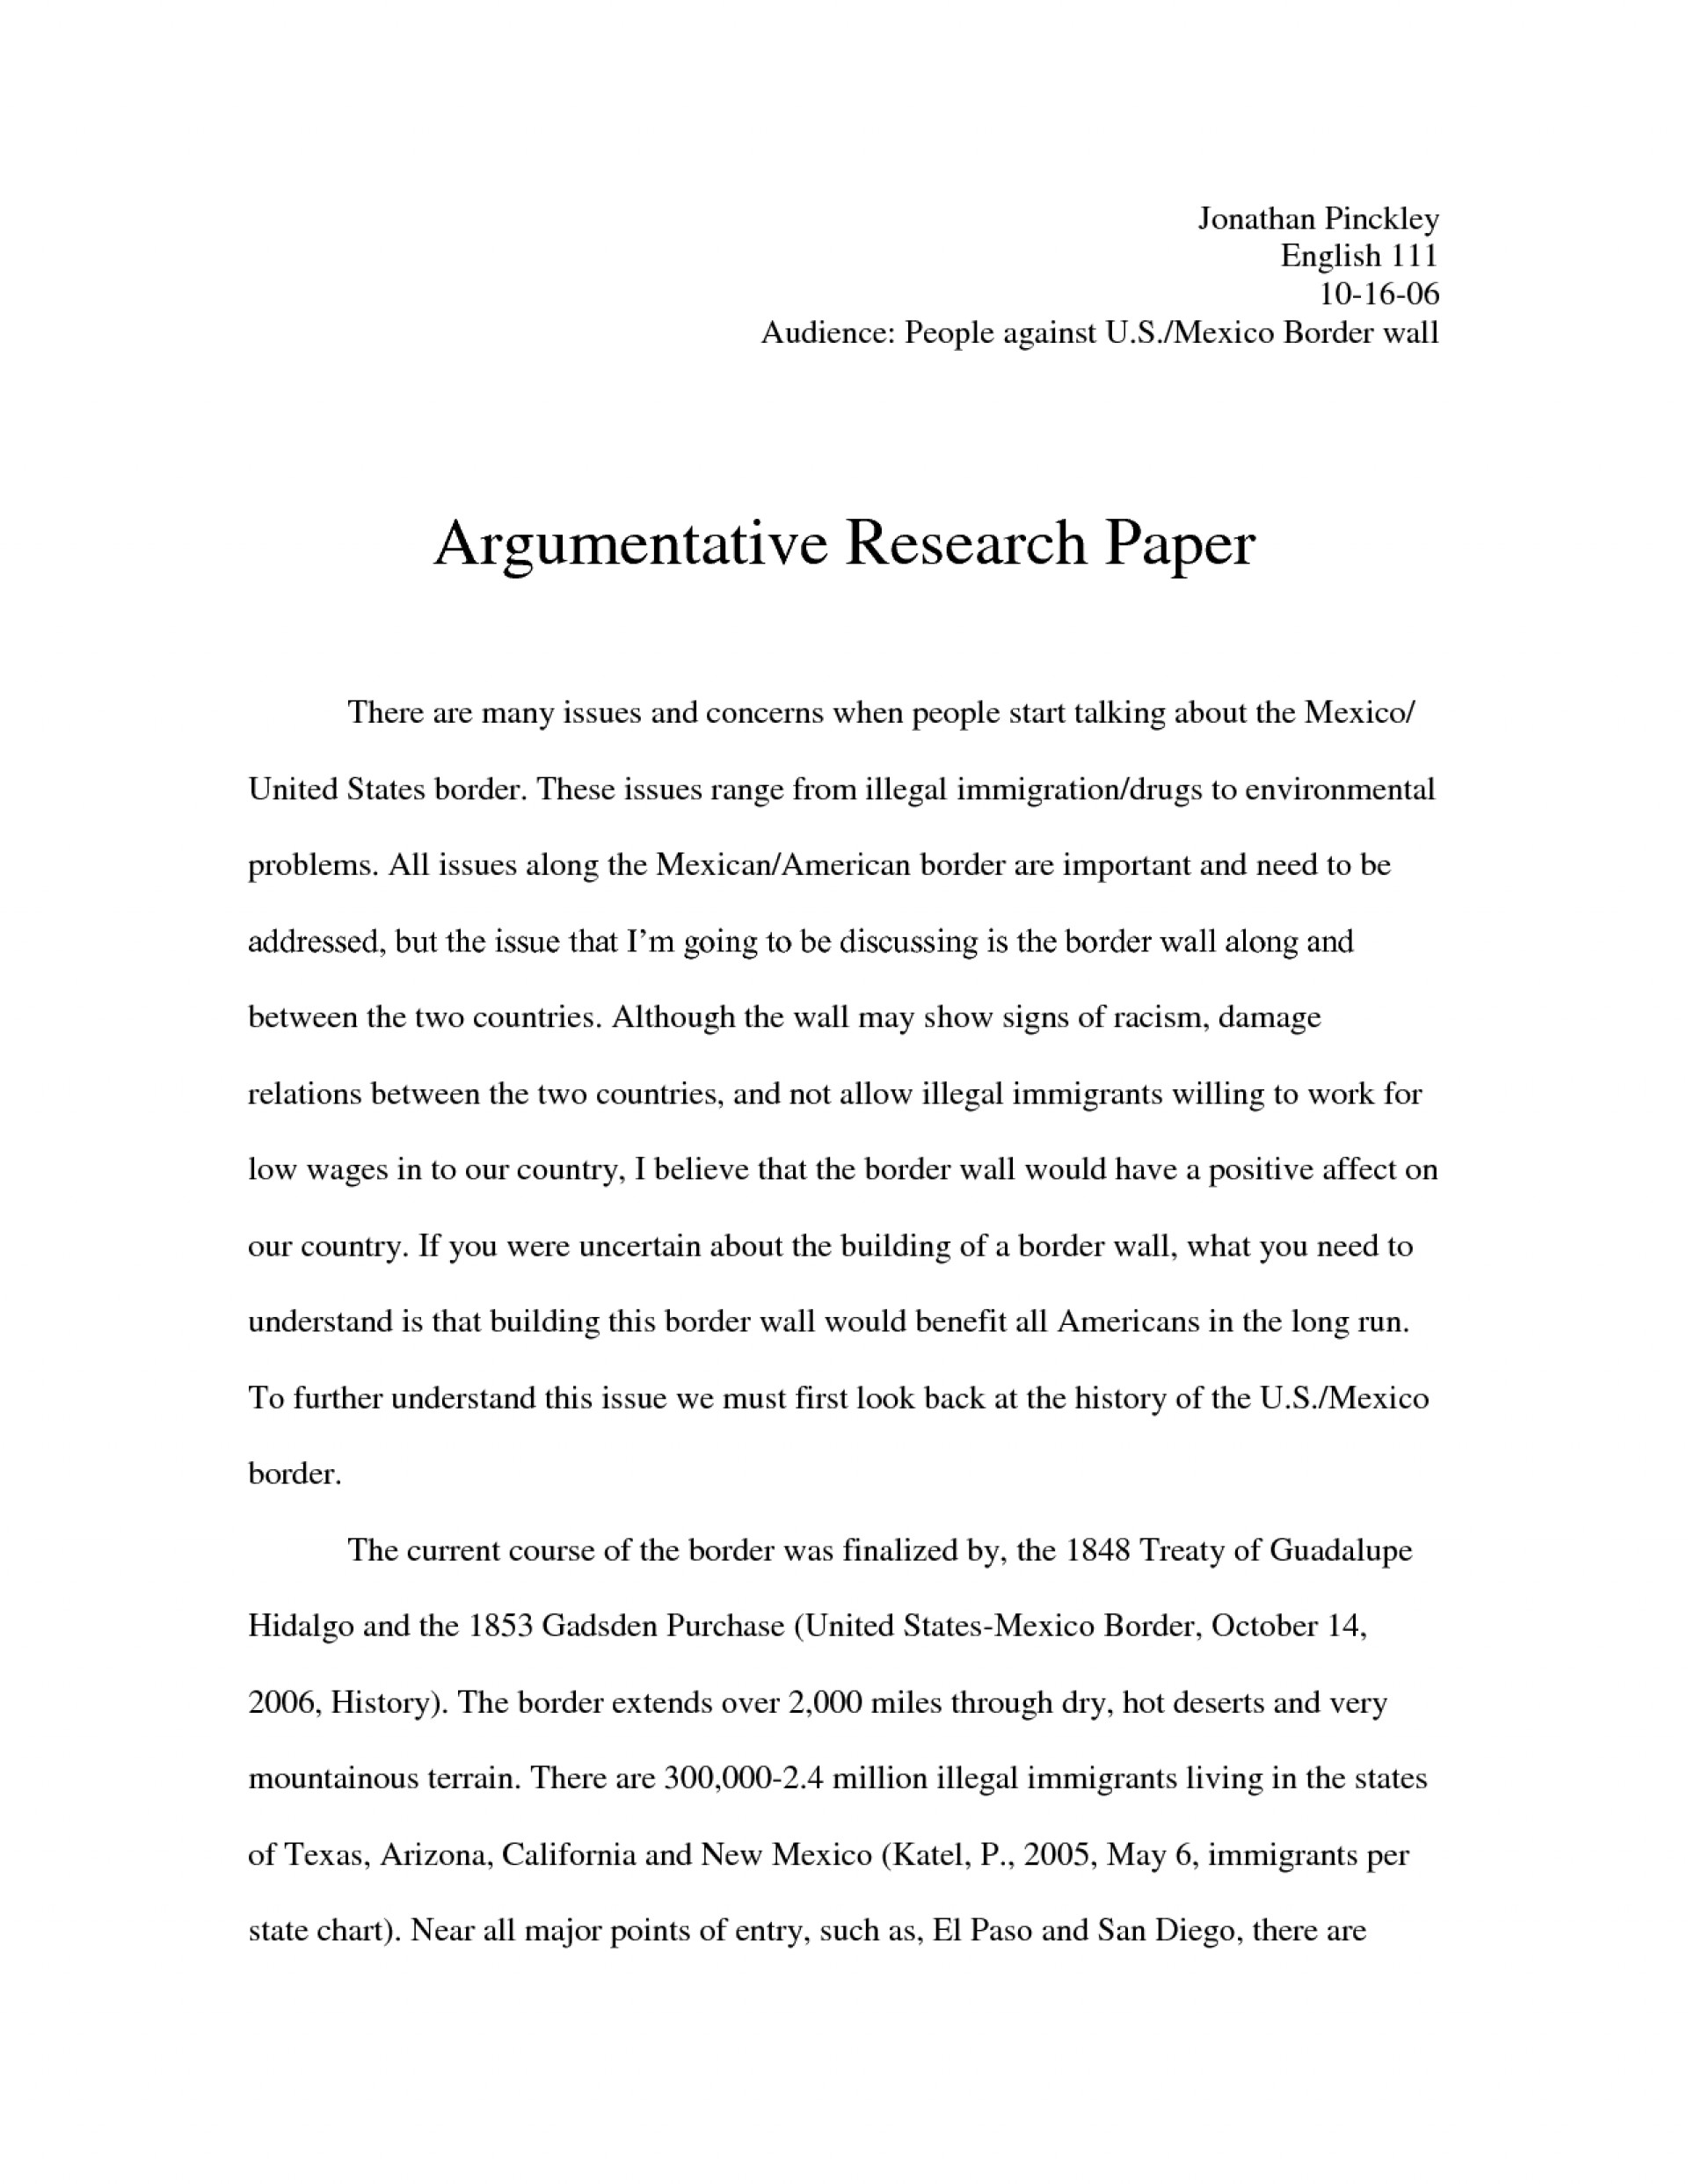 014 Uncategorized Debate20y Argumentative Thesis High School Topics Sentence Starters Outline Worksheet Structure20 For Research Rare A Paper Medical Interesting 1920